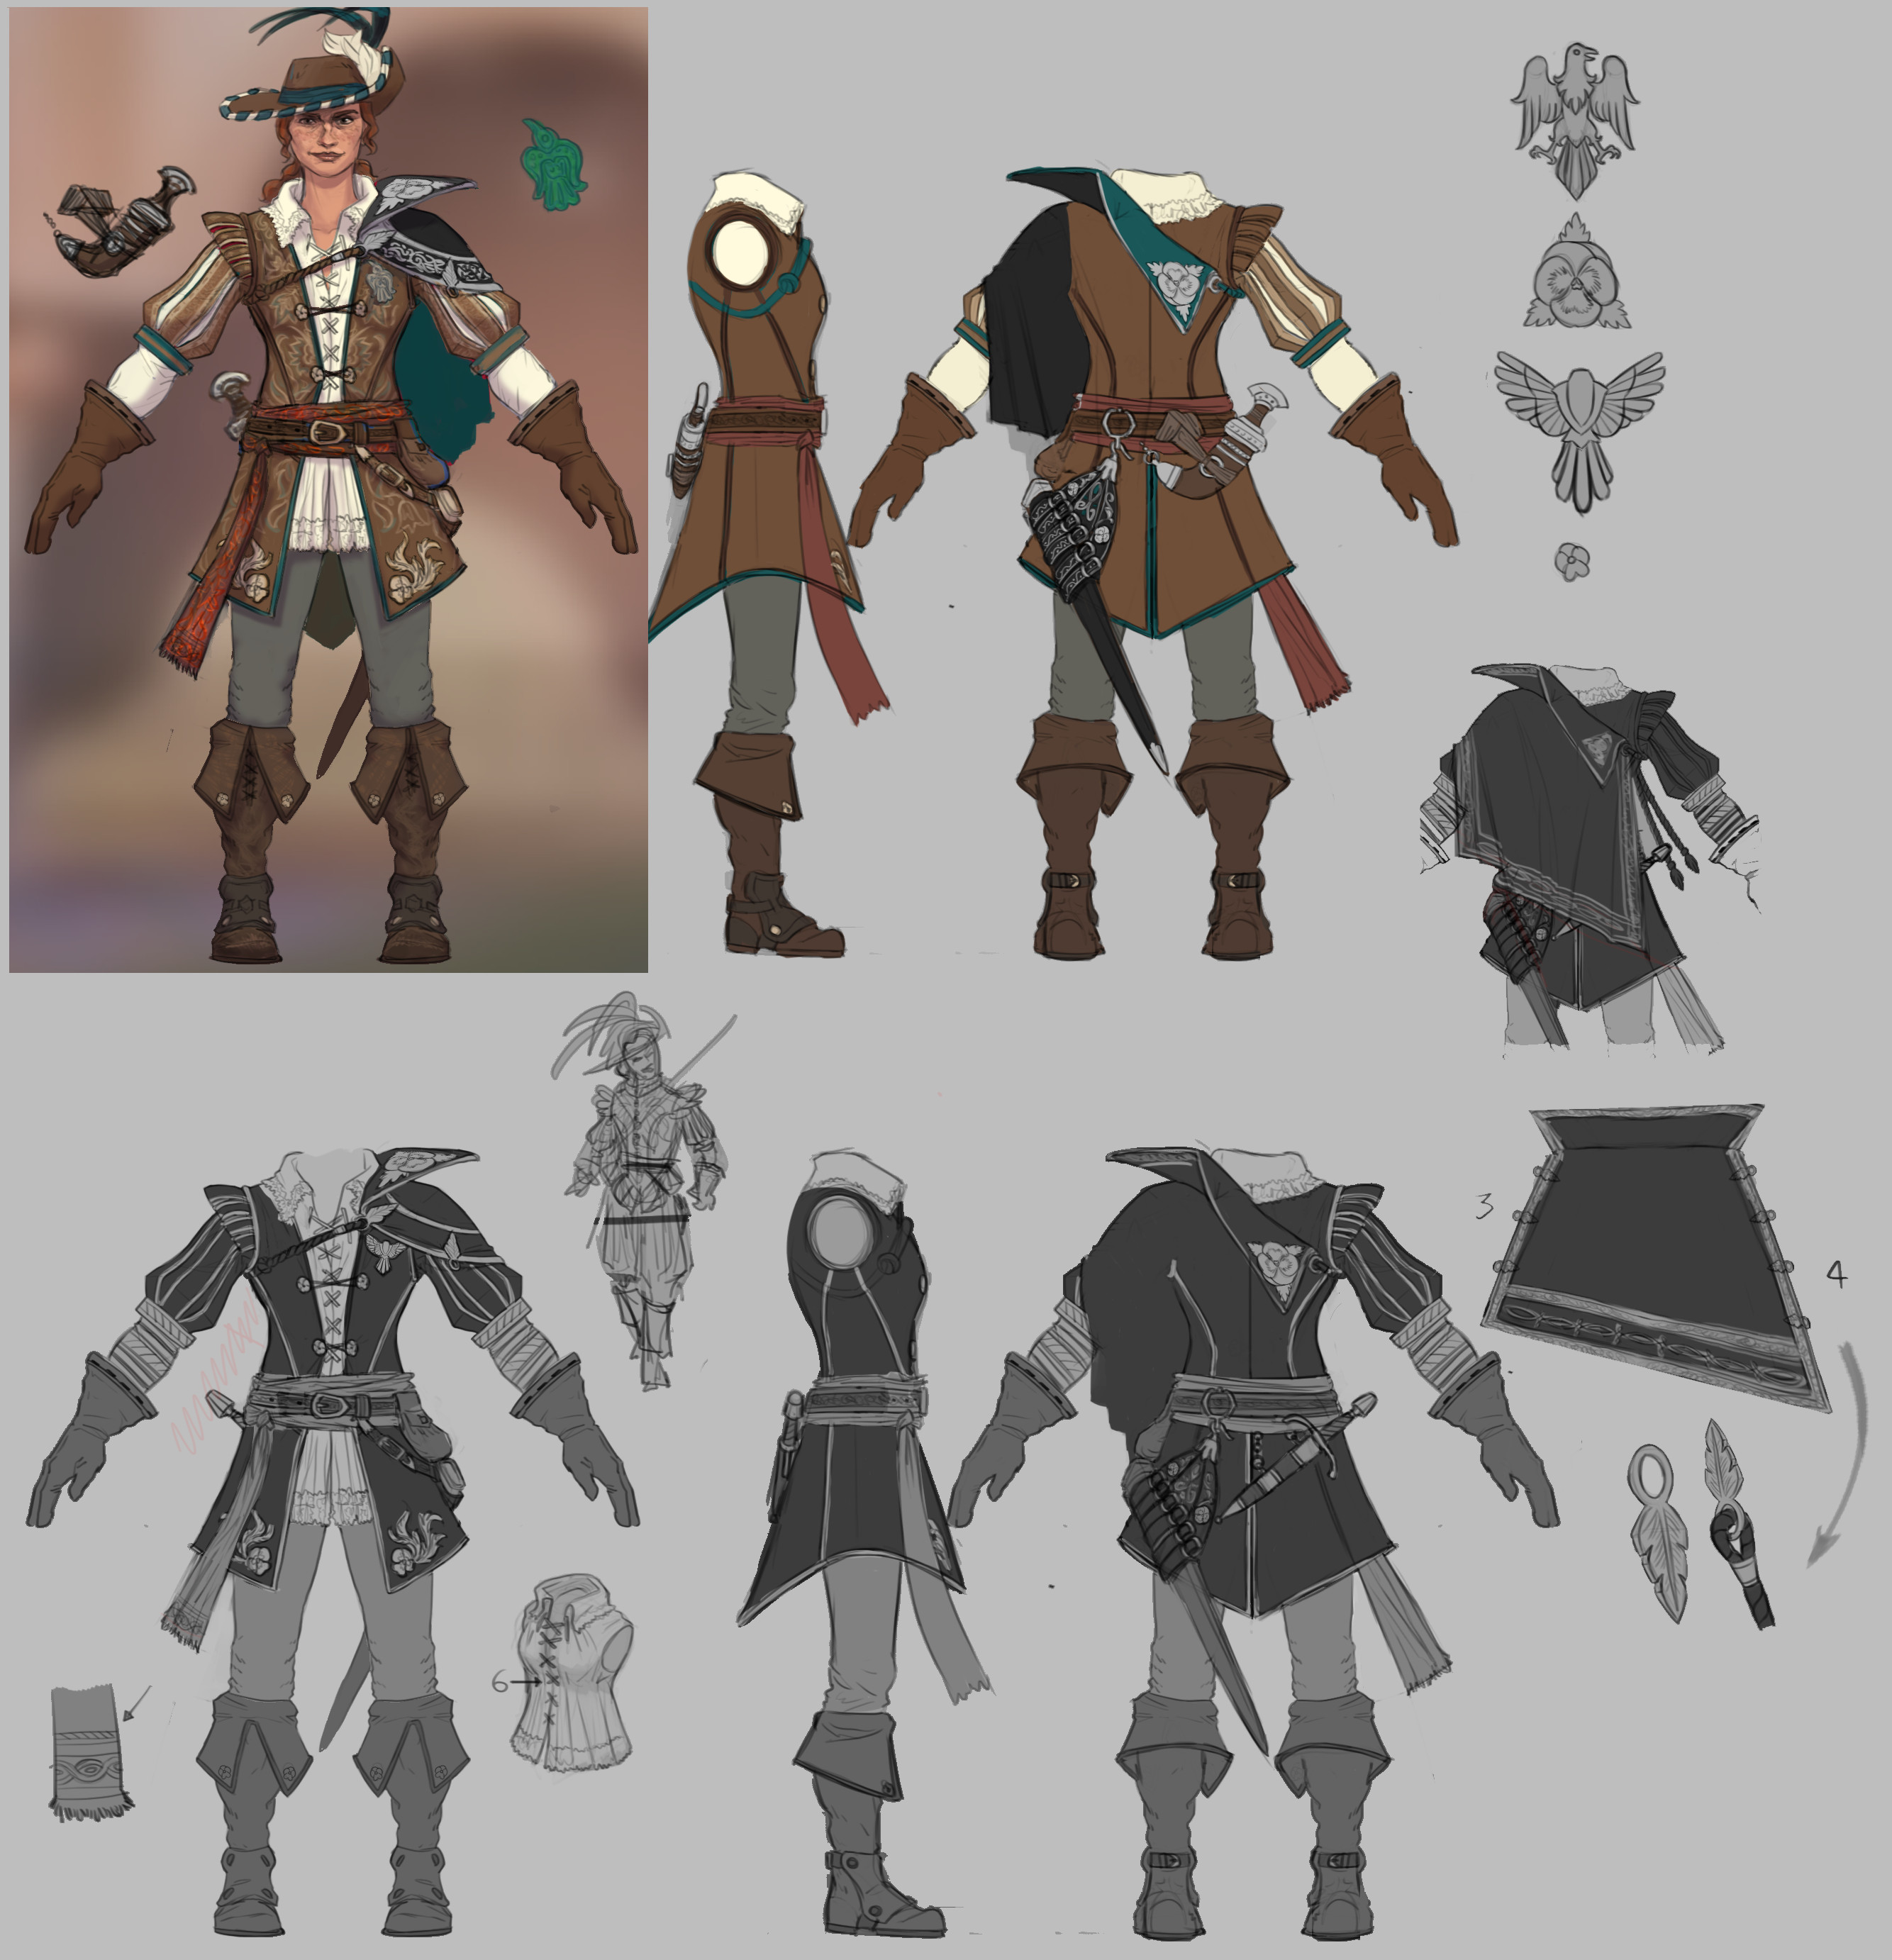 New costume turnaround and color change.